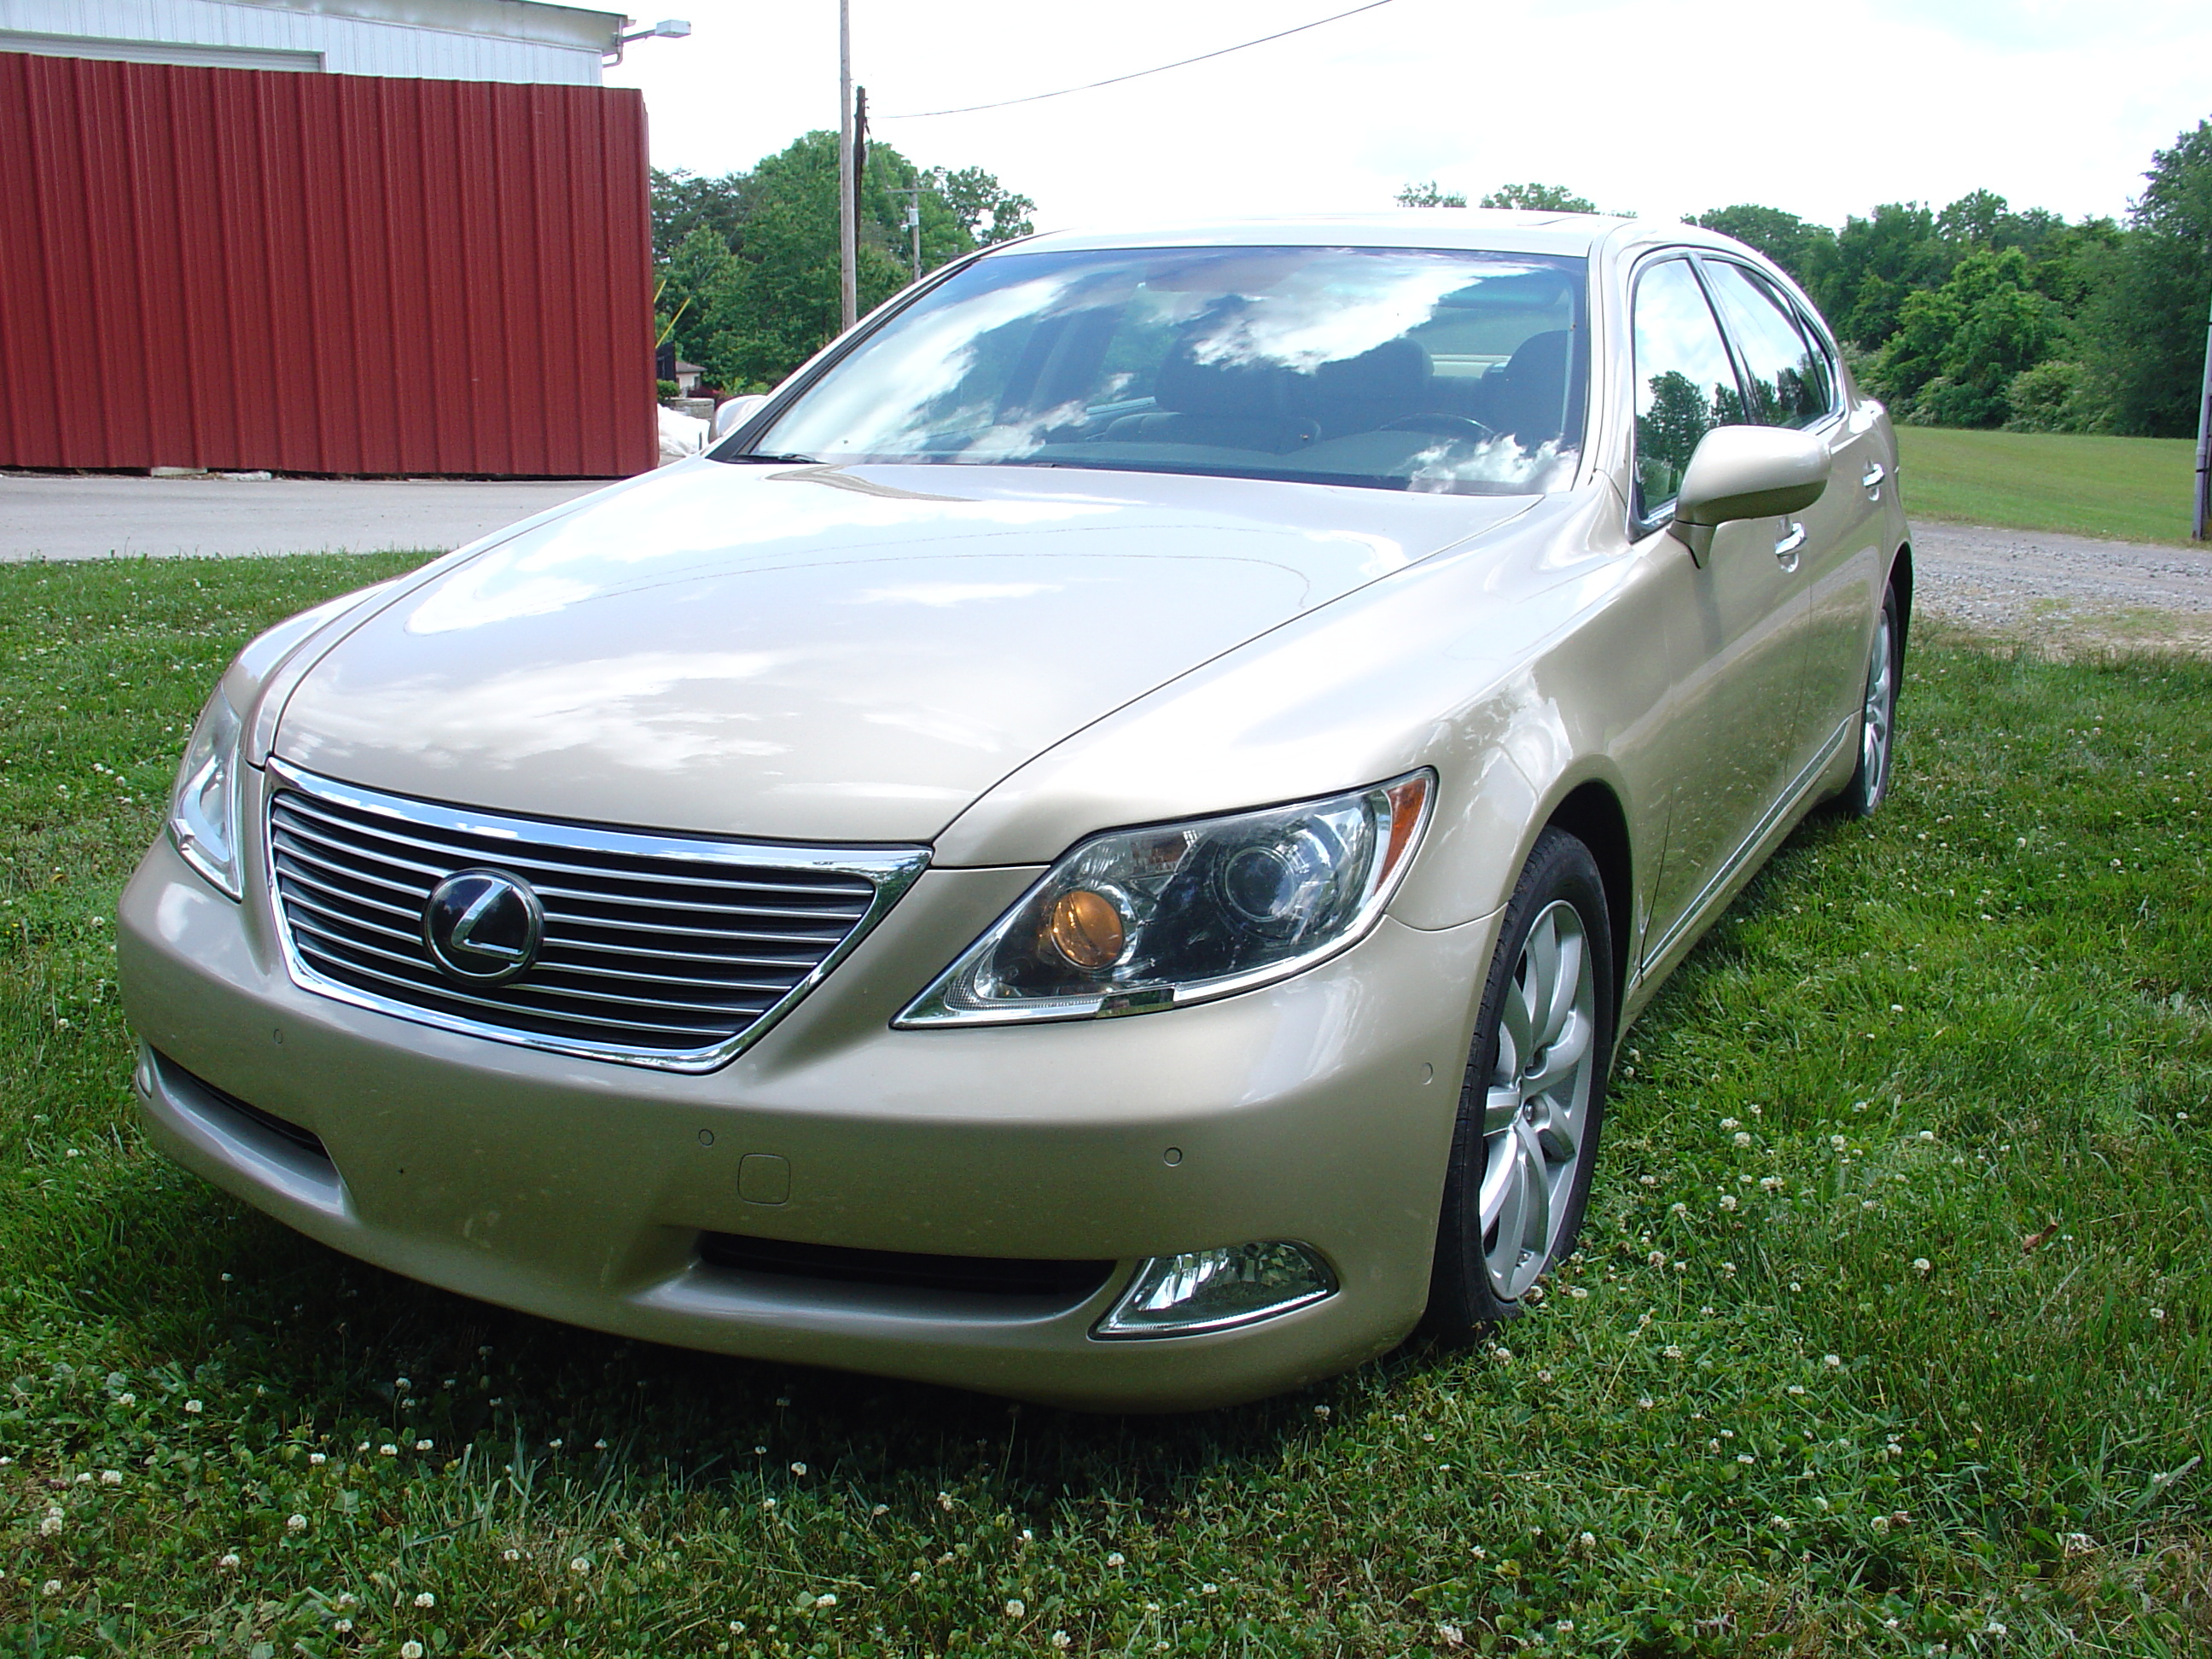 lexus ls460l knoxville tn used cars for saleknoxville tn used cars for sale. Black Bedroom Furniture Sets. Home Design Ideas